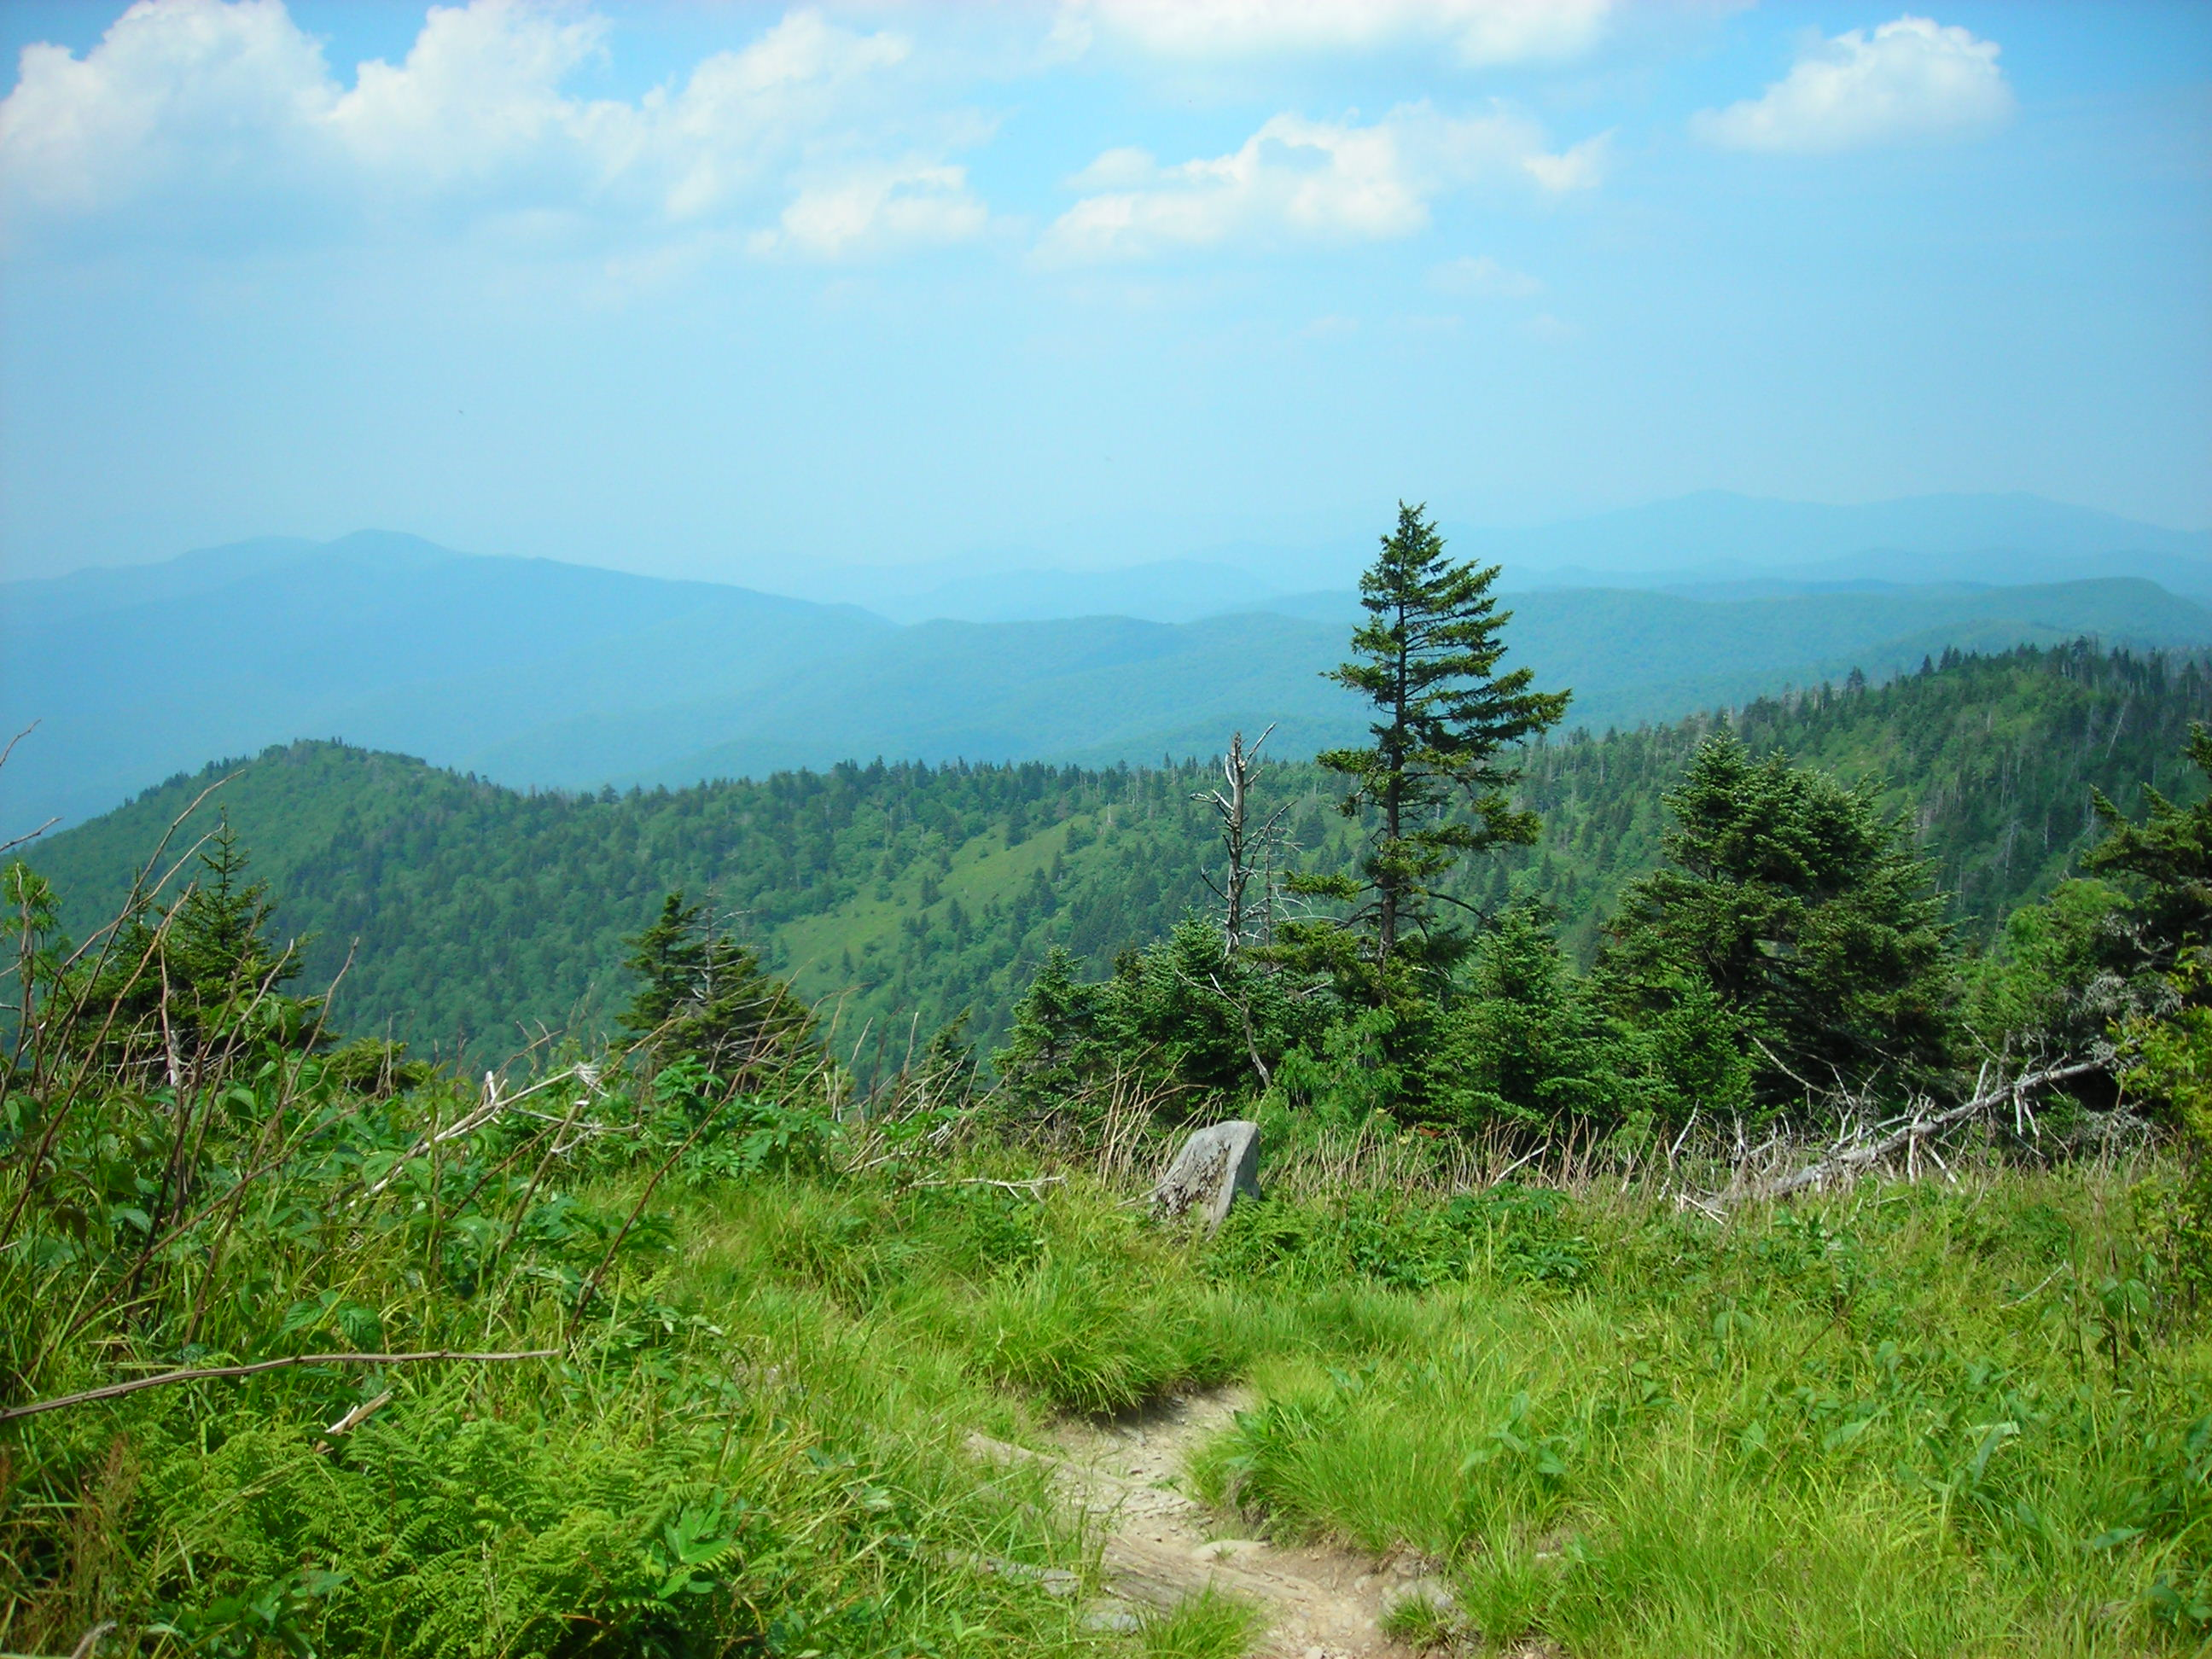 Appalachian_Trail_Heading_to_Double_Springs_Gap_From_Clingman's_Dome